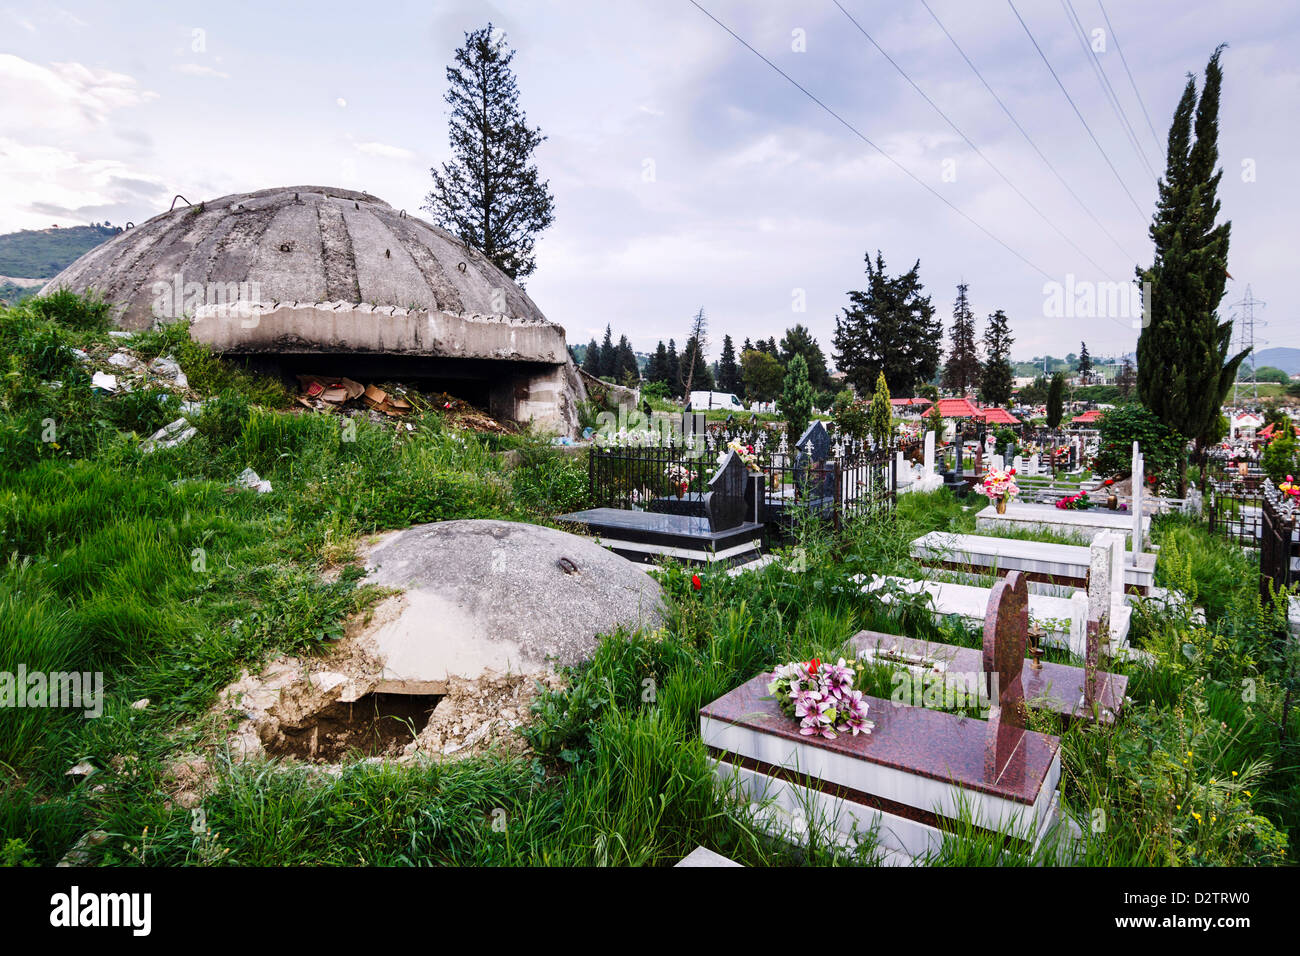 Old bunkers among the tombs of Sharra cemetery. Tirana, Albania - Stock Image